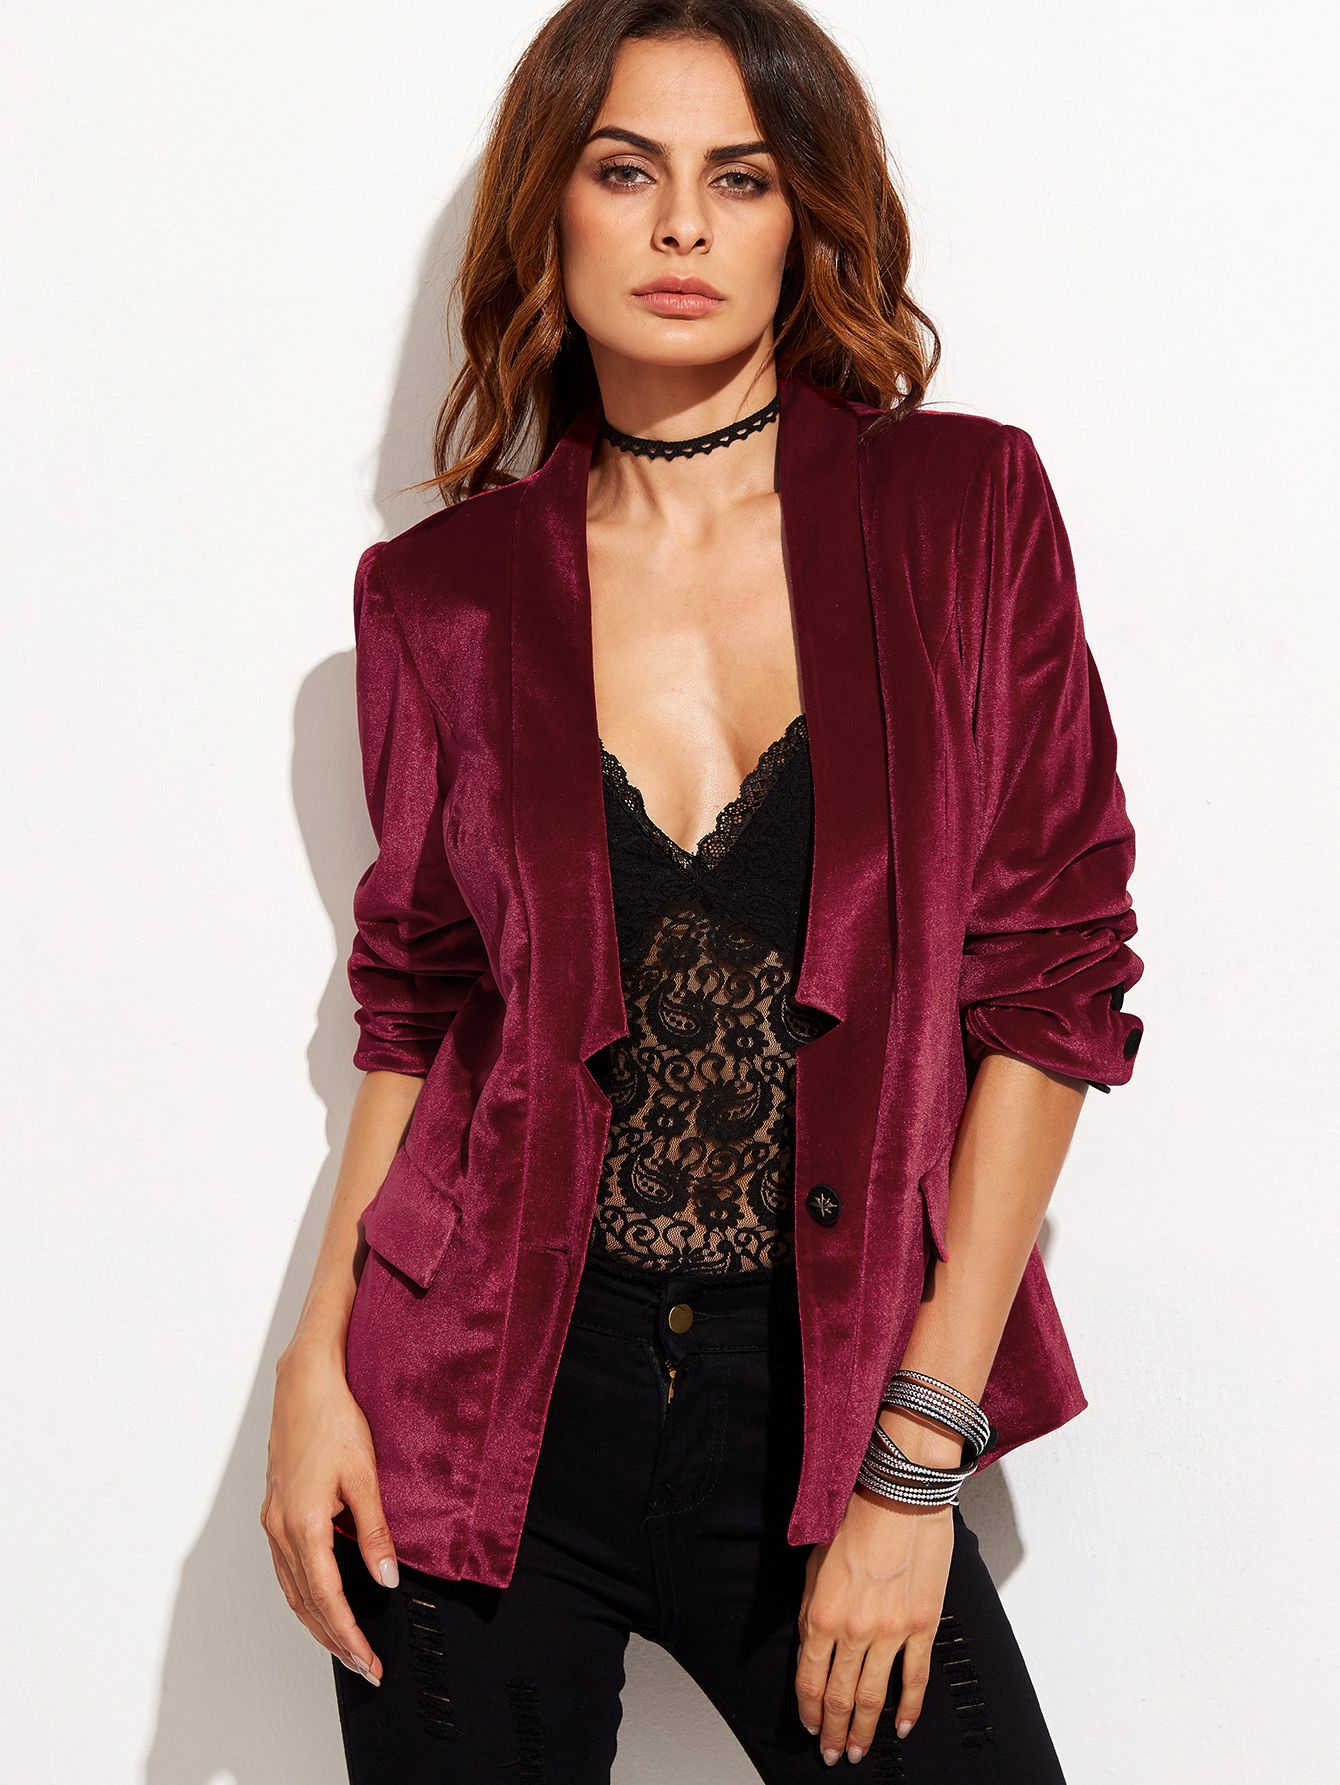 b692ae5ba5c1 Shop Burgundy One Button Notched Collarless Velvet Blazer online. SheIn  offers Burgundy One Button Notched Collarless Velvet Blazer & more to fit  your ...